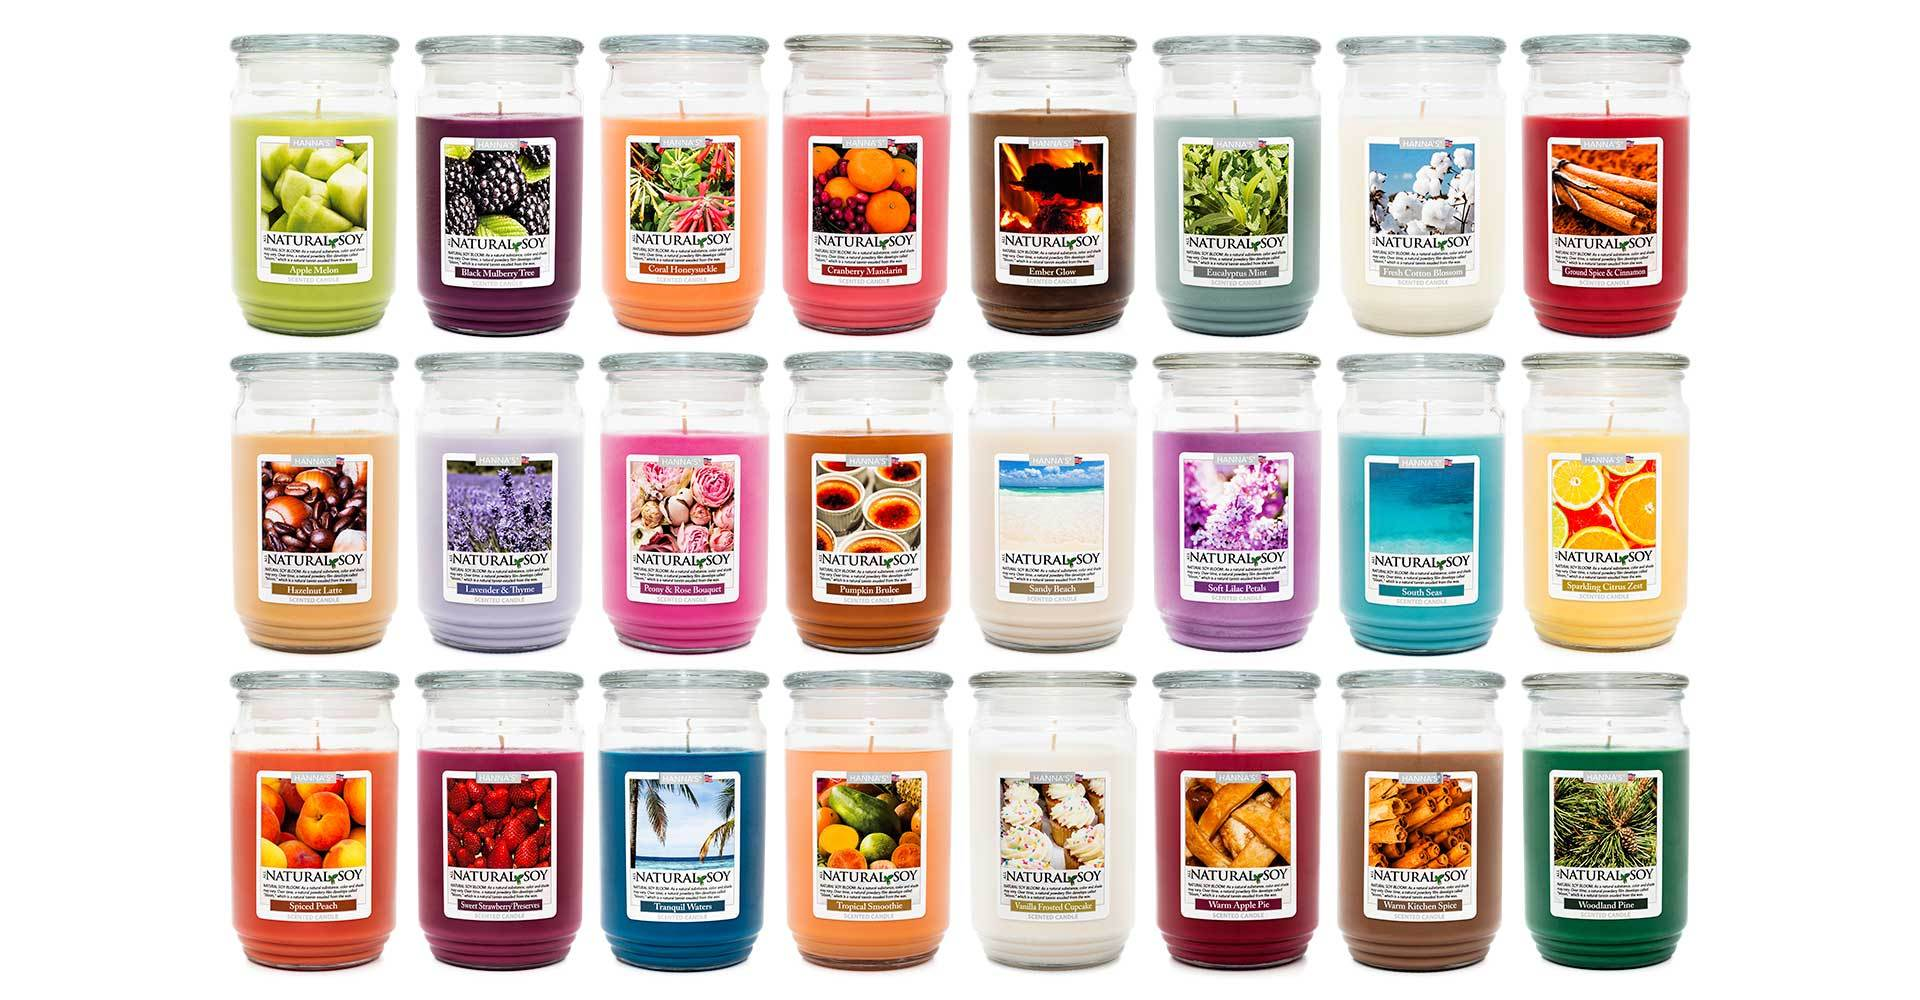 Natural Soy Lavender Thyme Scented Soy Candle 100% Soy Candles Candlemart.com $ 12.99